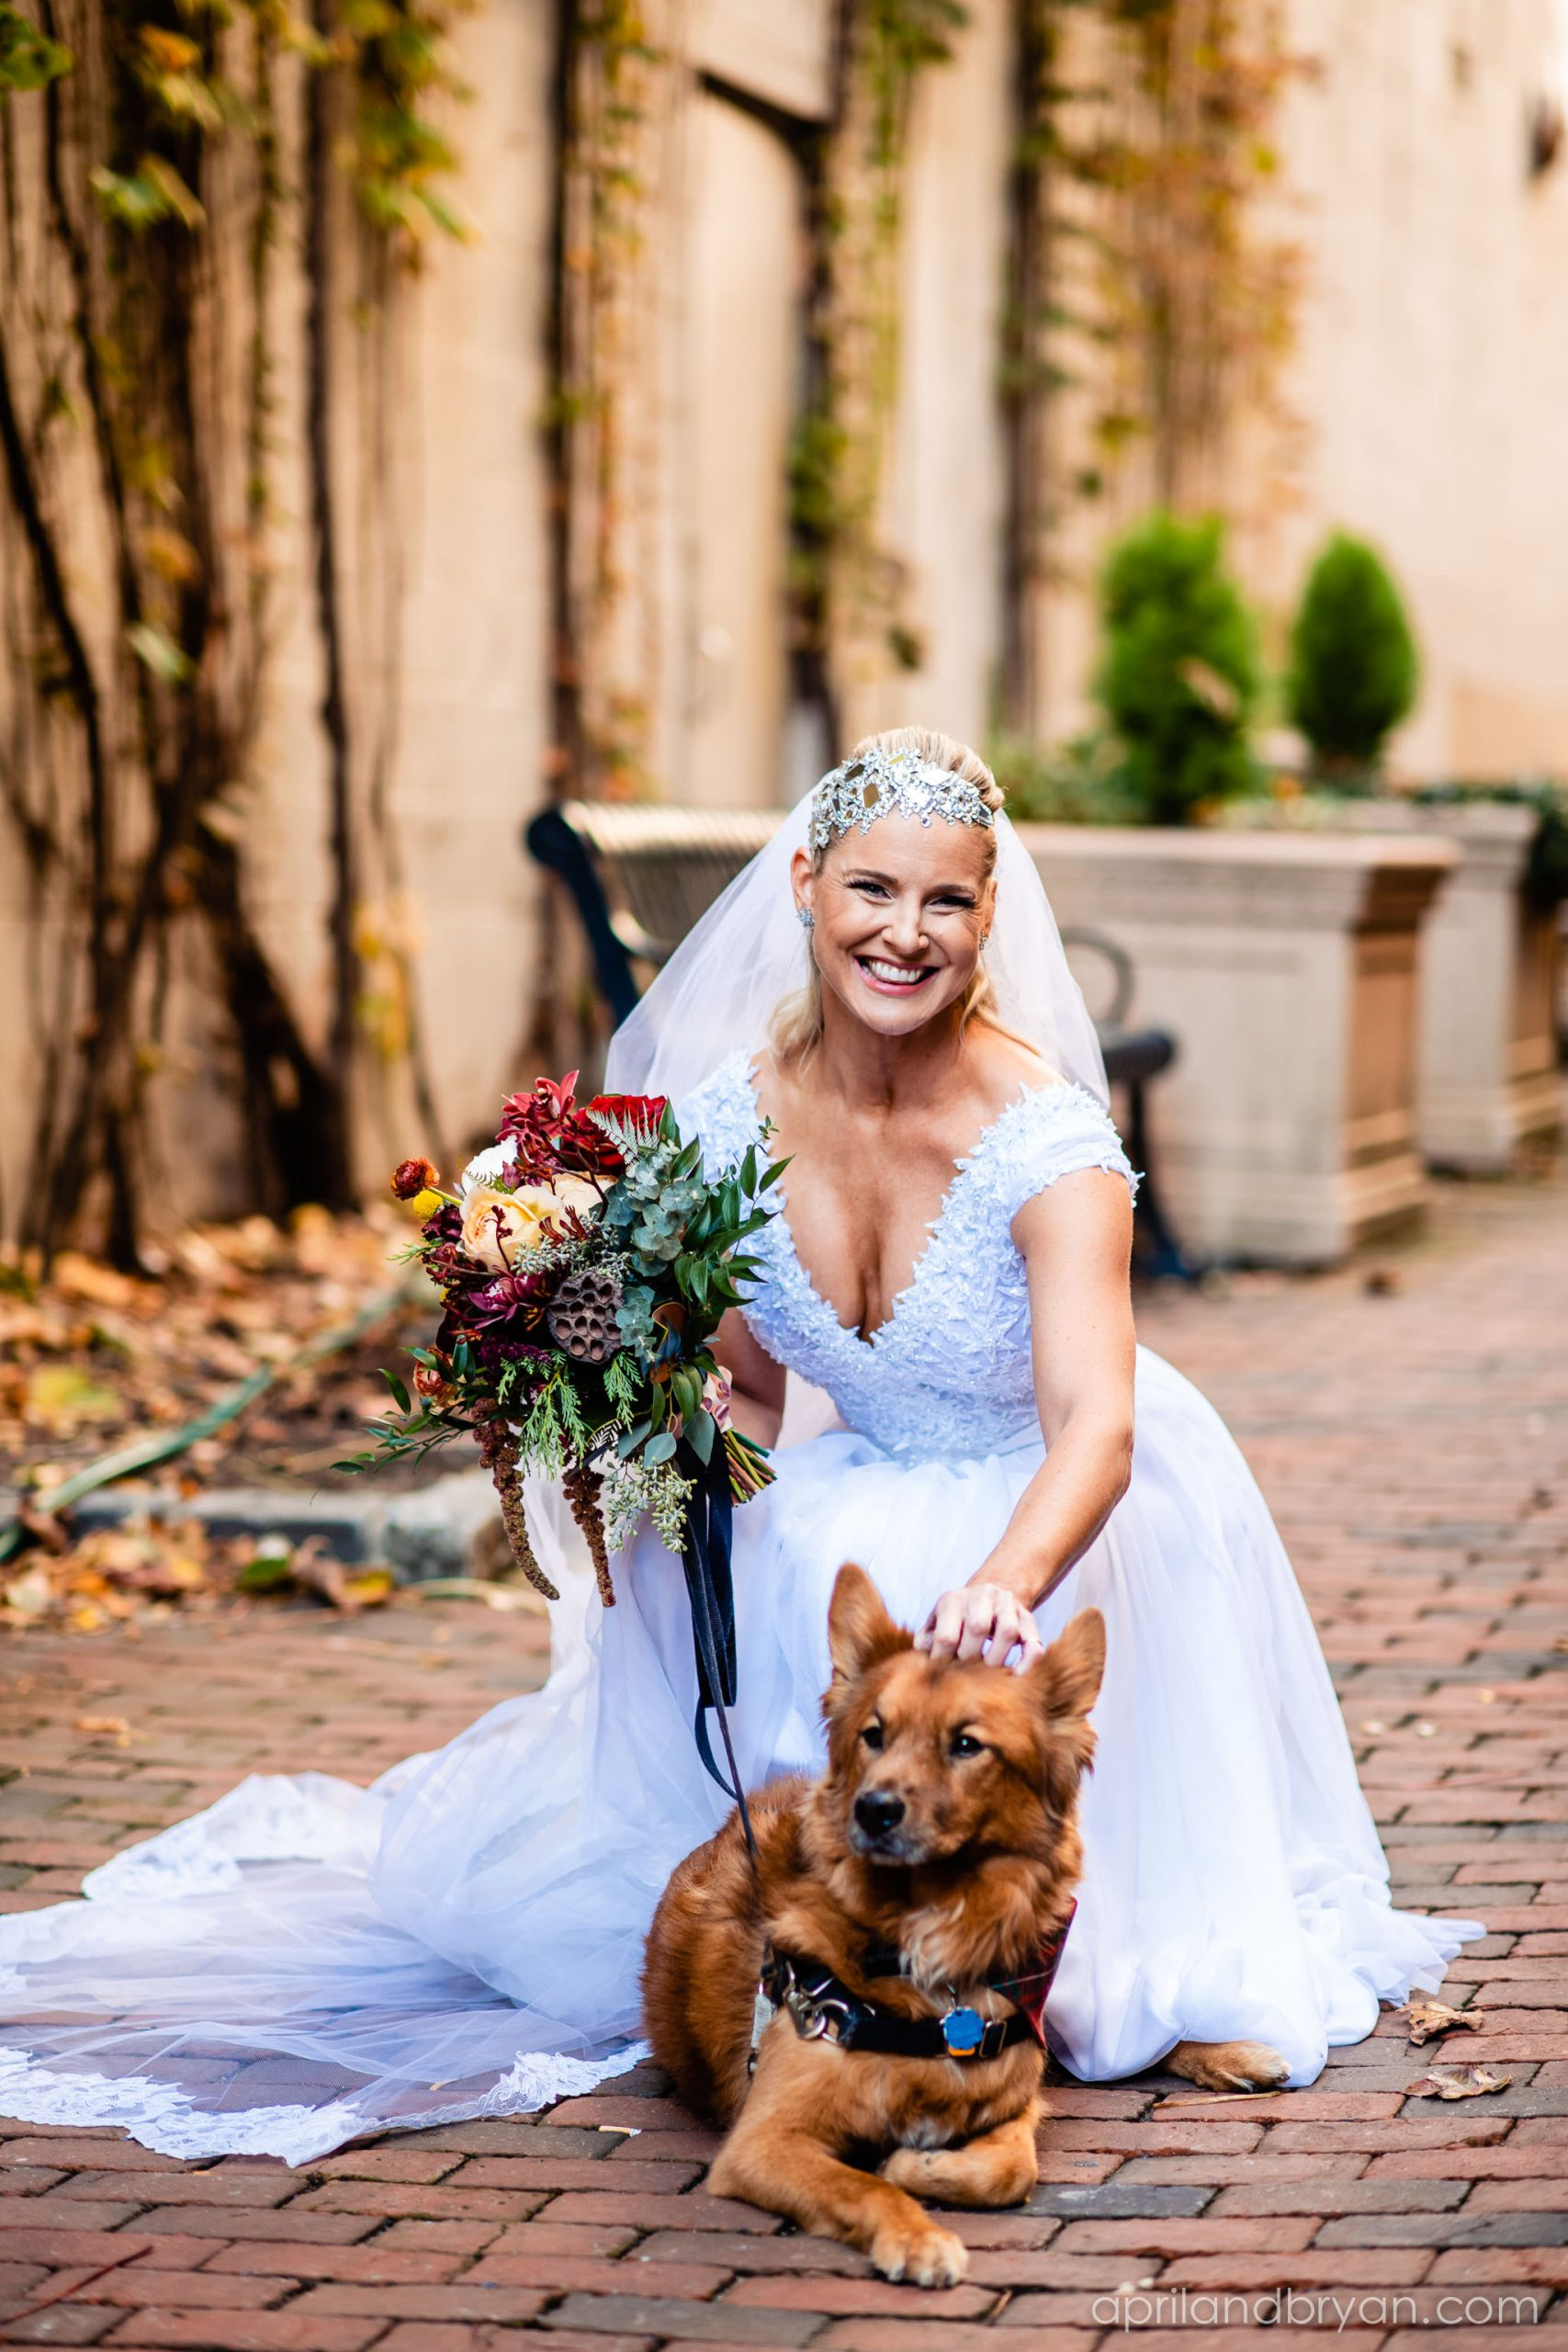 The bride gets a chance to take some photos with the family dog before the ceremony. Nicholas and Rebecca Fasnacht tie the not at Tellus360 on November 1, 2019. Captured by April & Bryan Photography and featured on Dream Weddings.